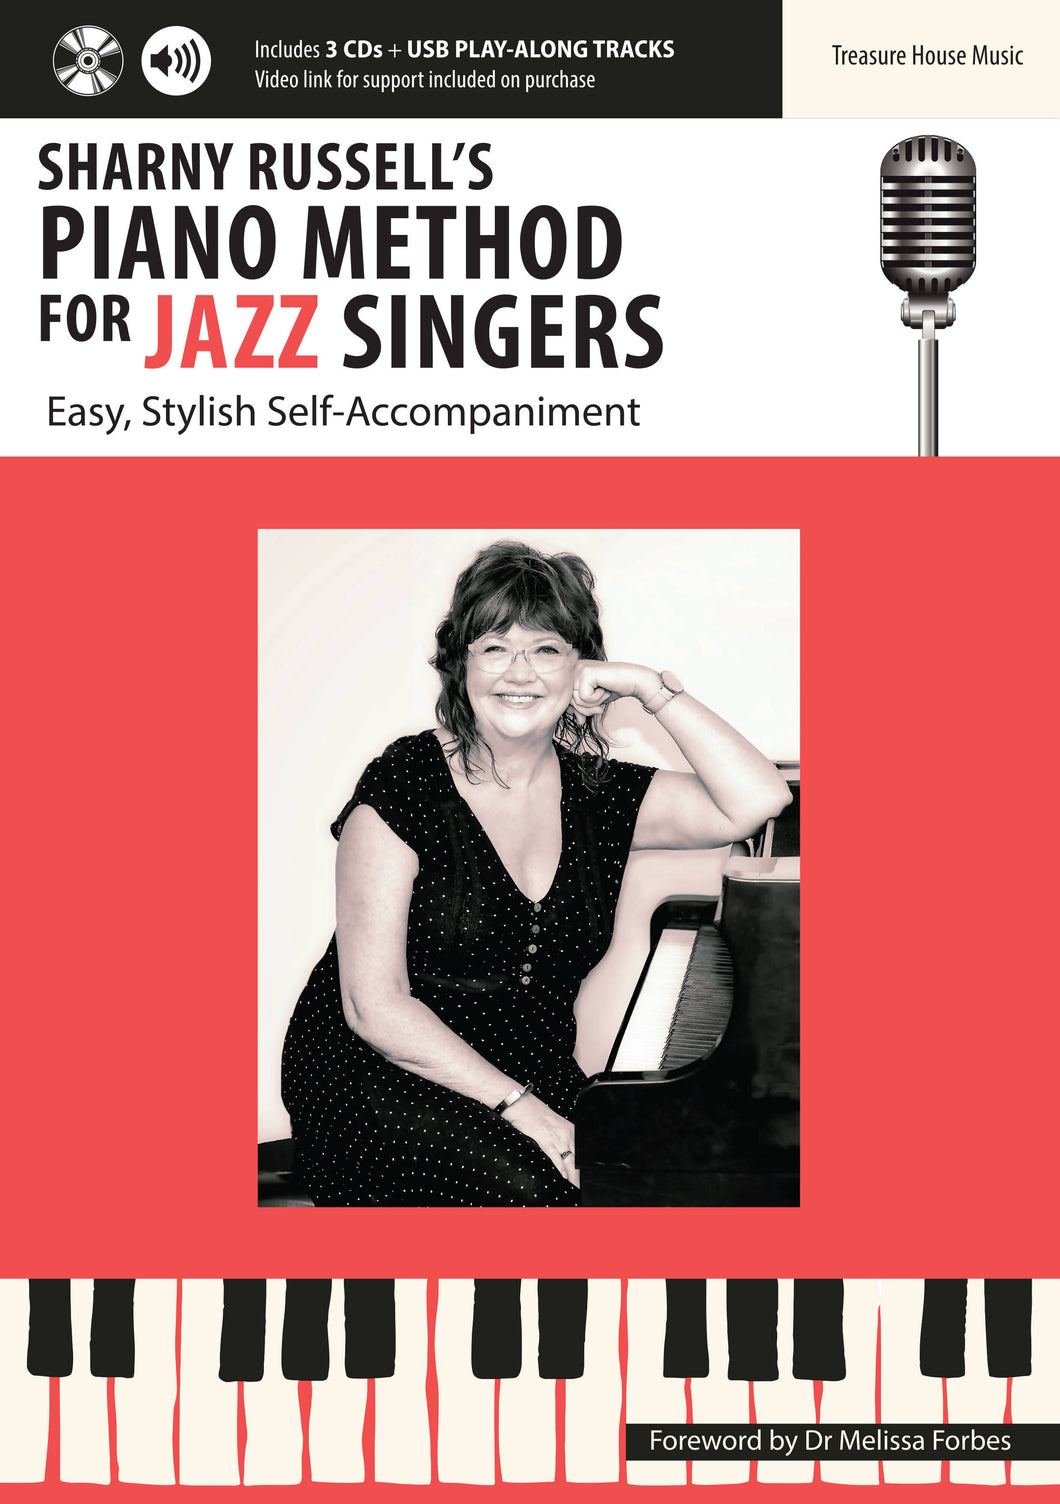 Sharny Russell's PIANO METHOD FOR JAZZ SINGERS